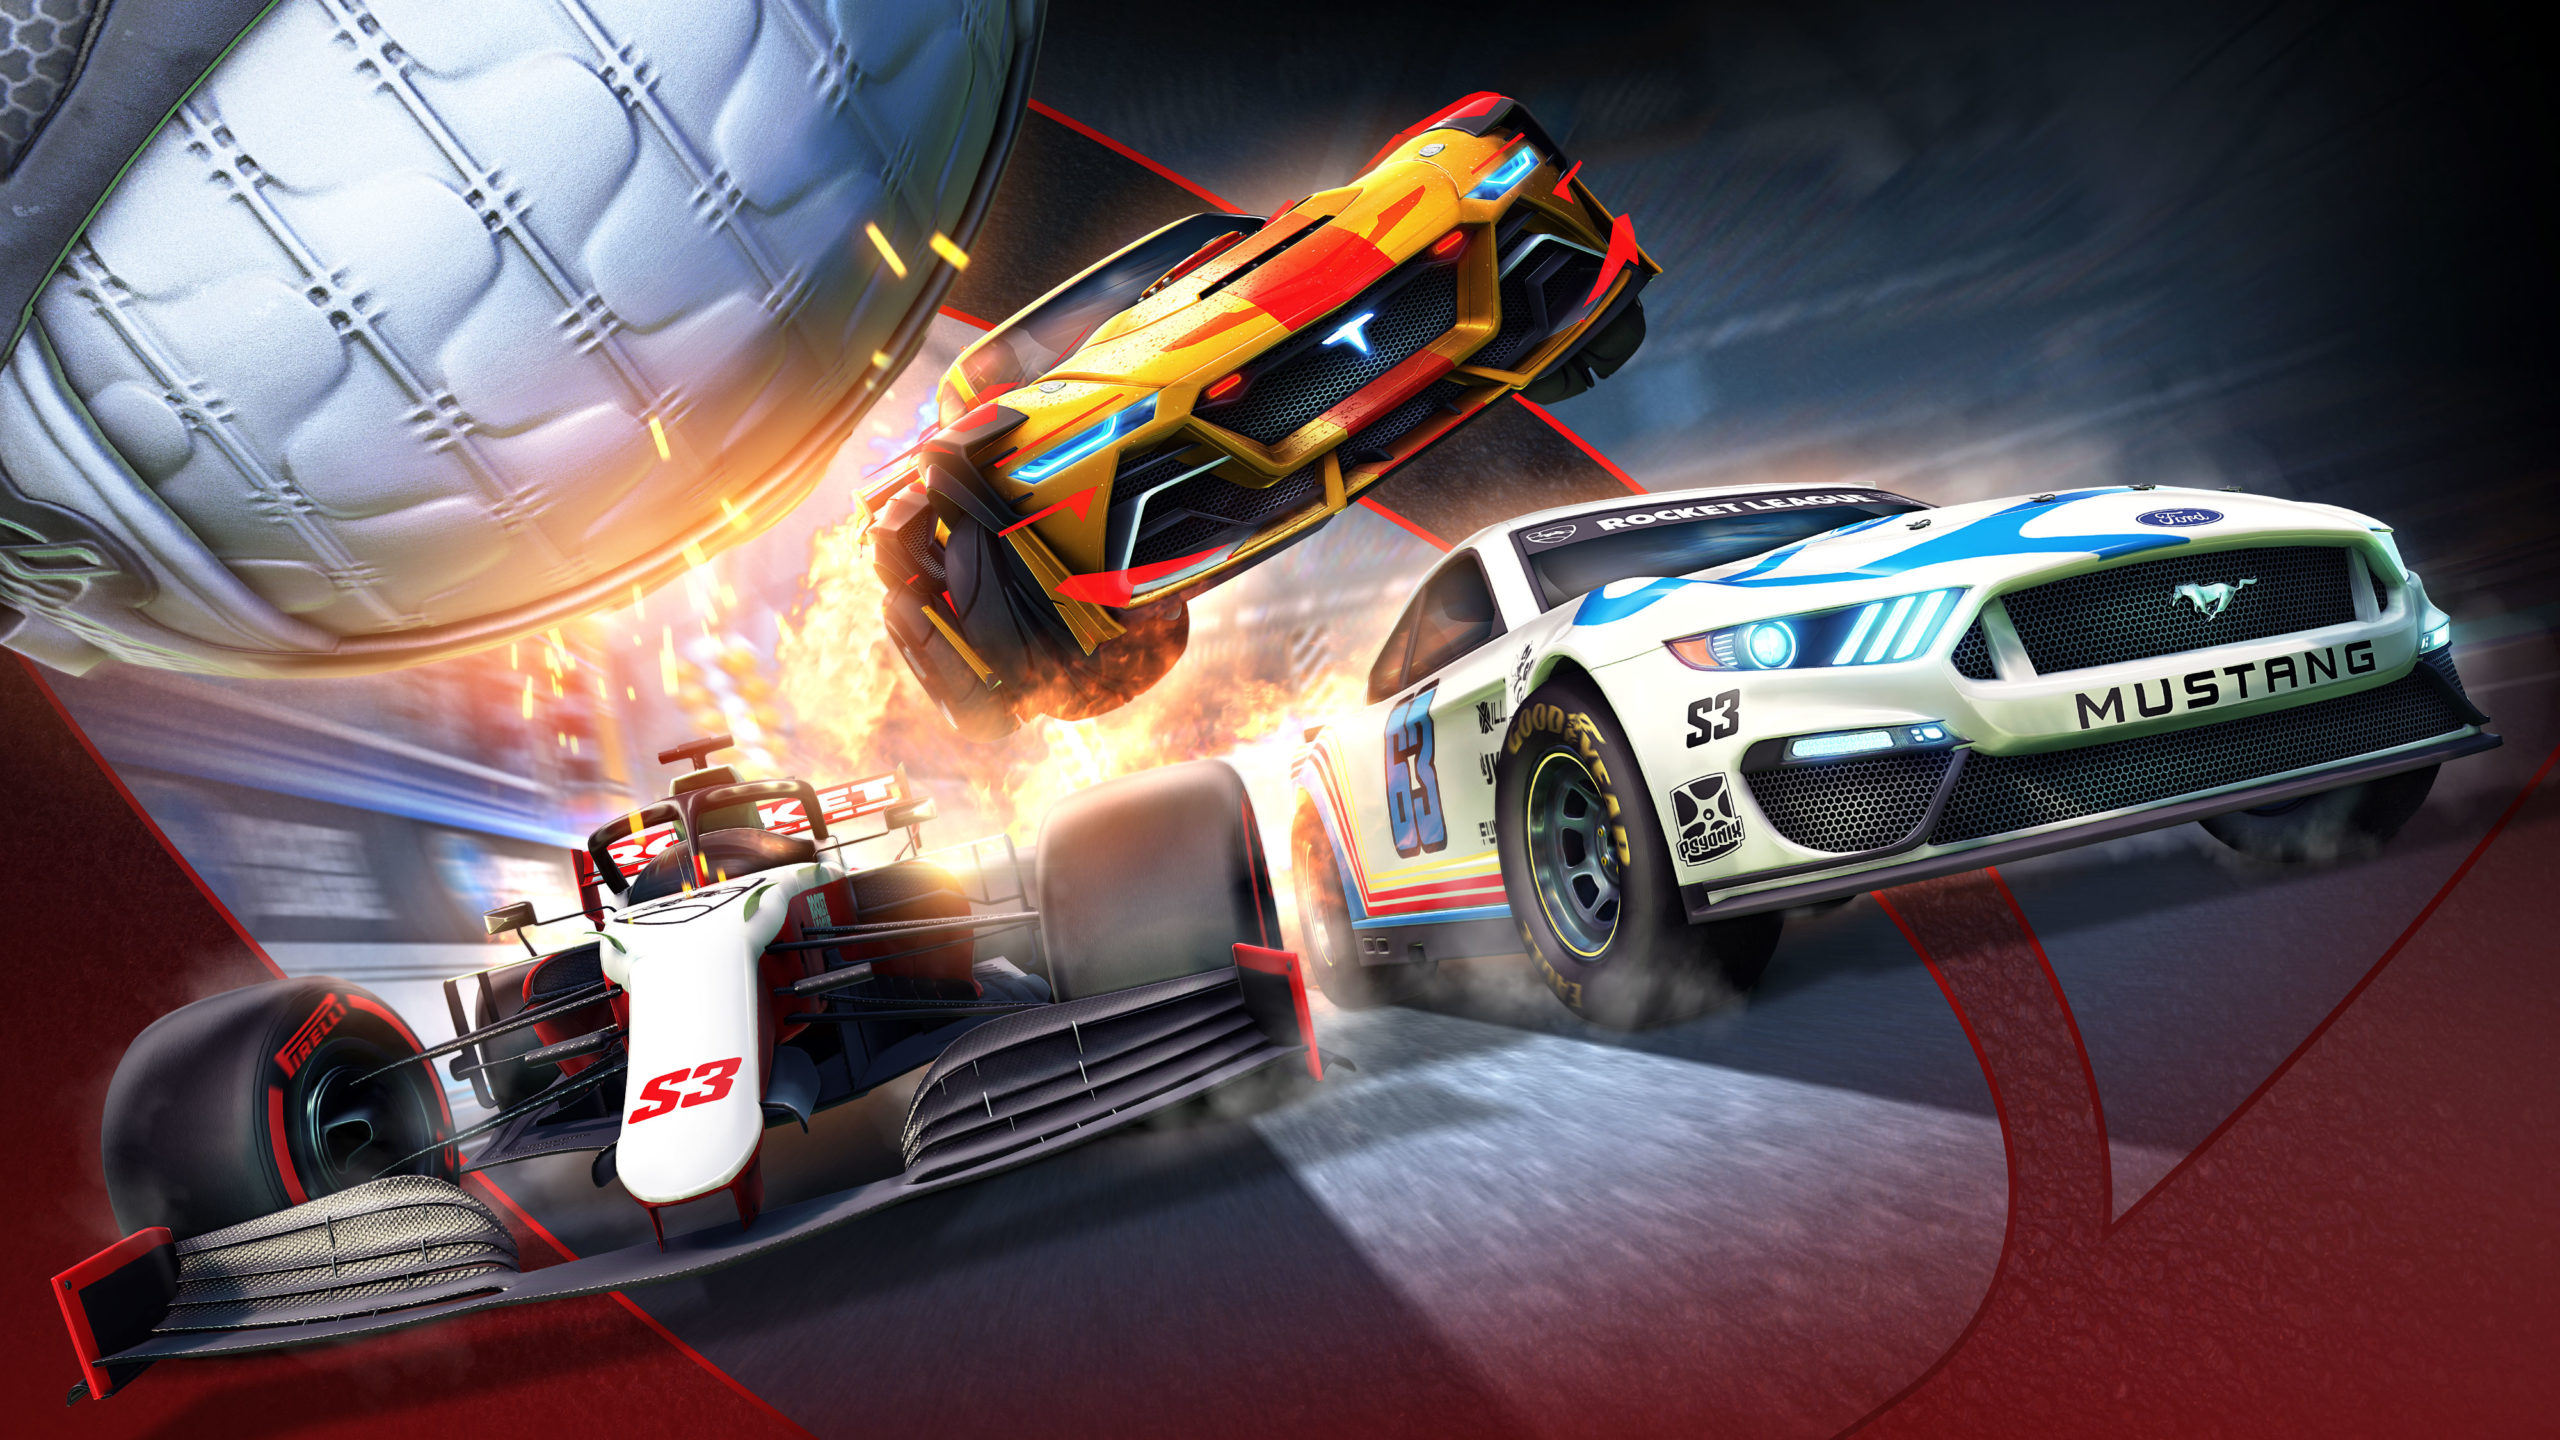 Promotional image for Rocket League season 3, depicting NASCAR and F1 cars.